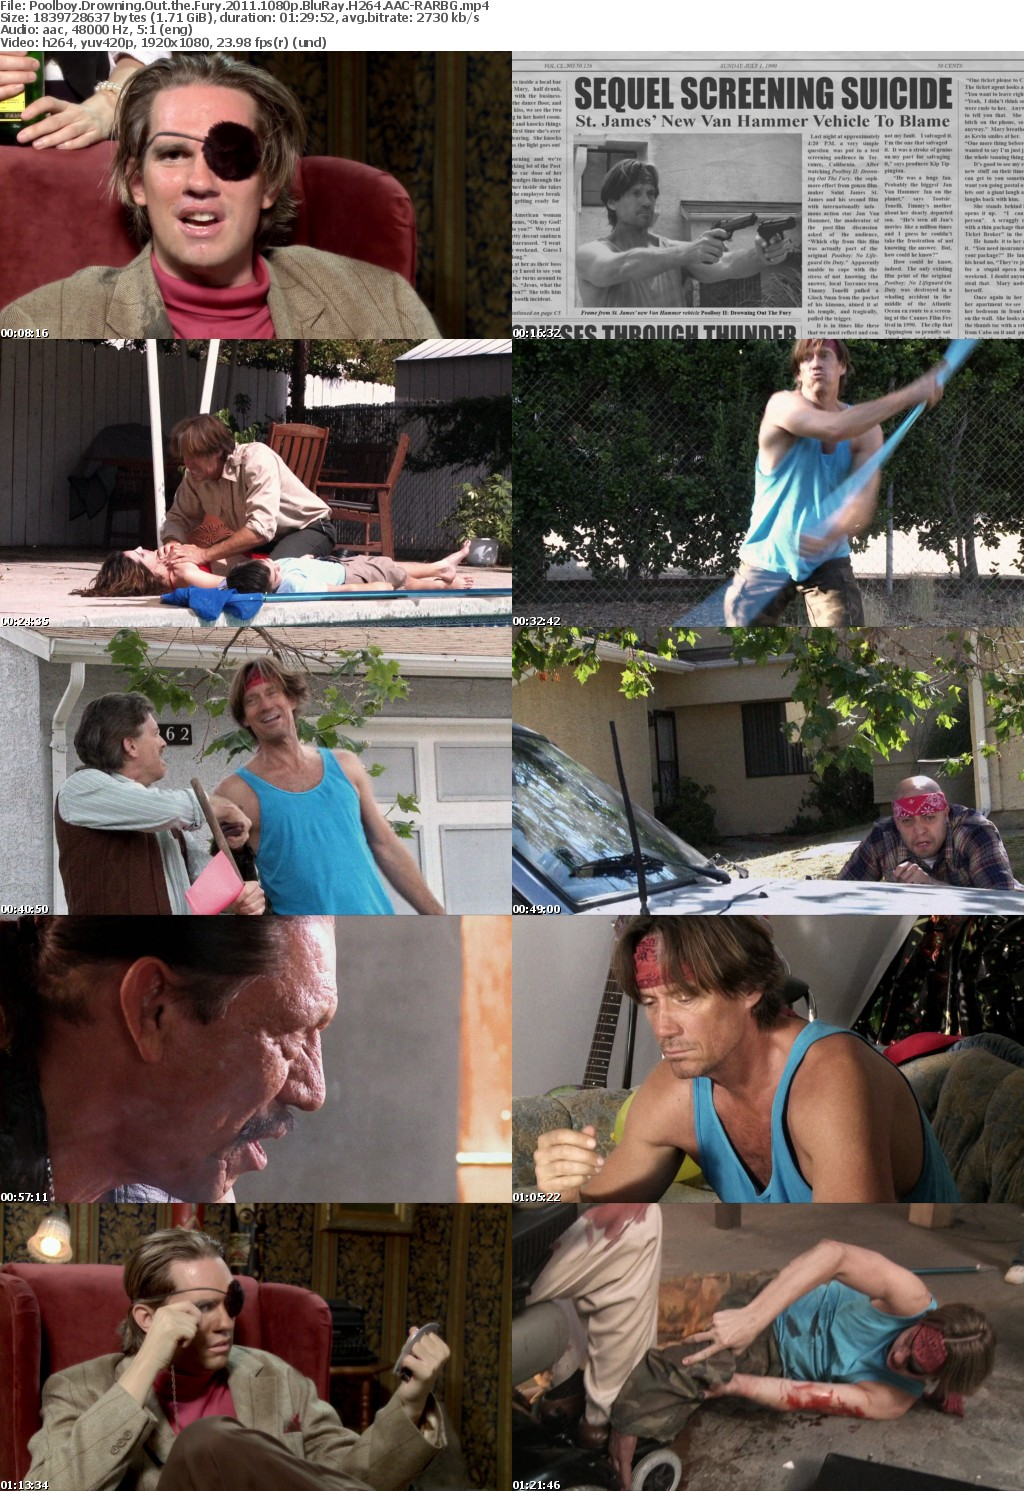 Poolboy Drowning Out the Fury (2011) 1080p BluRay H264 AAC-RARBG